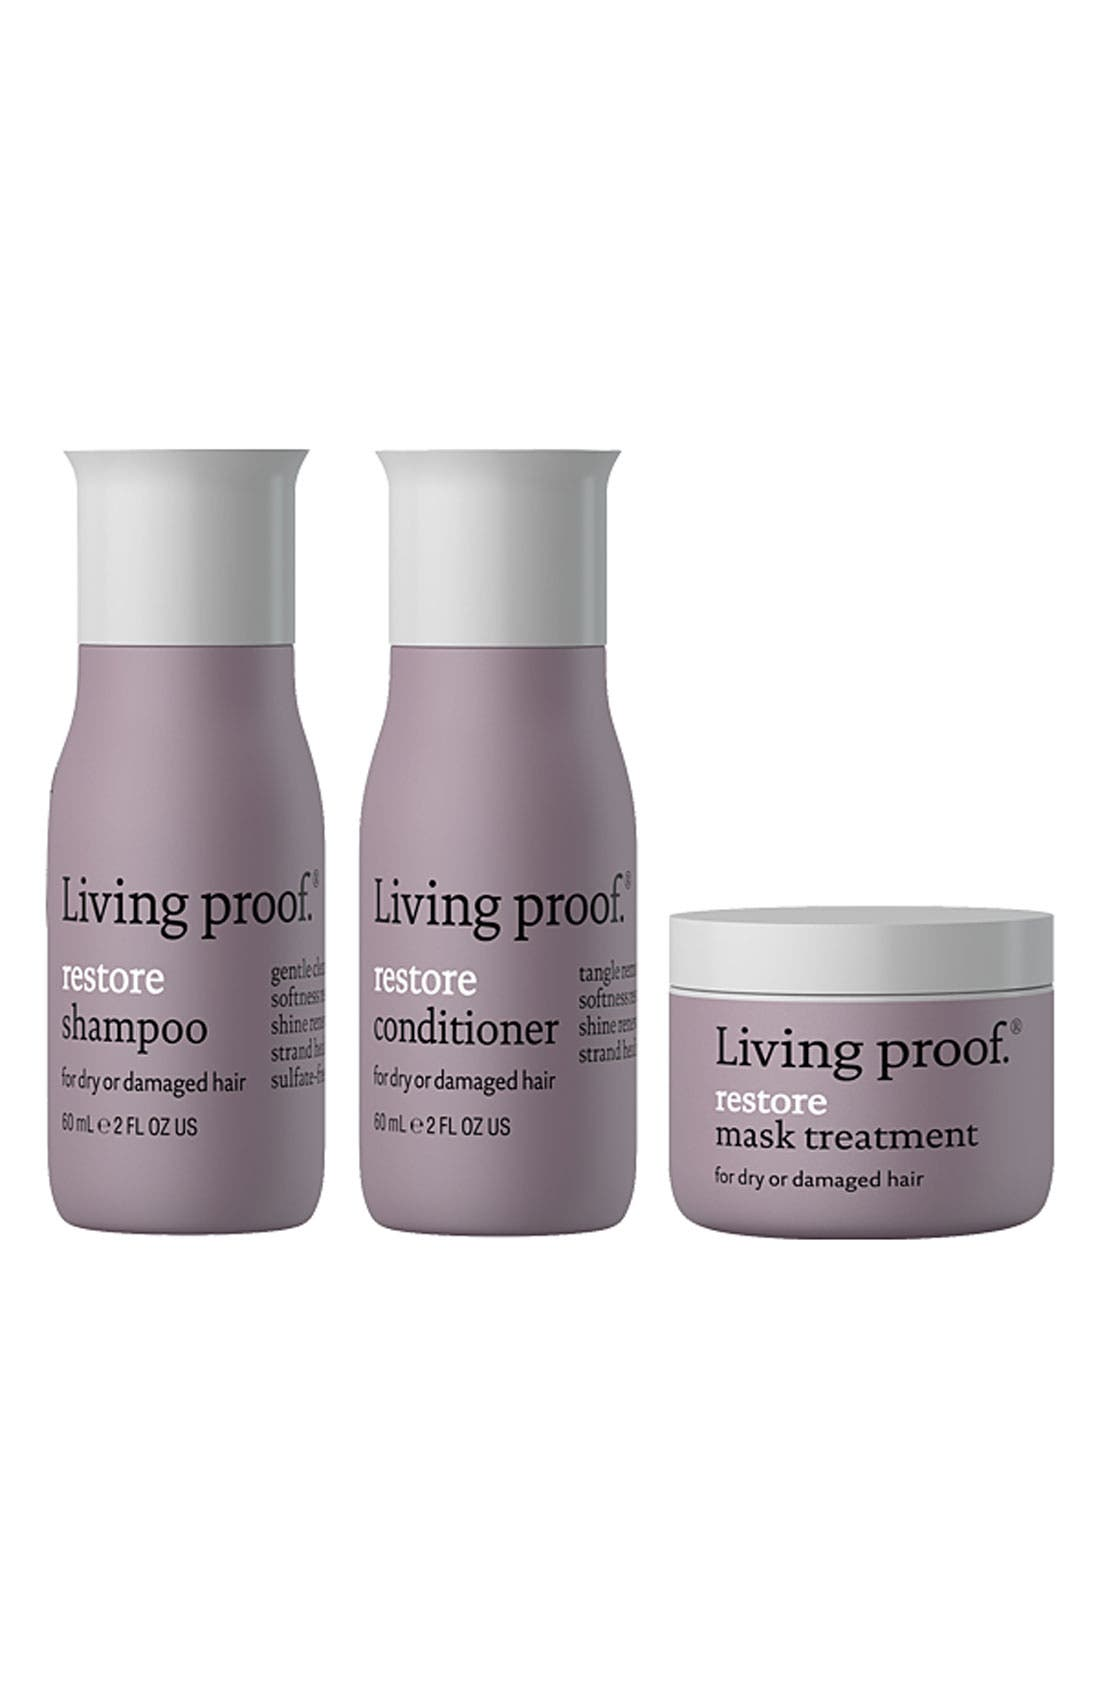 Living proof® 'Restore' Discovery Kit ($36 Value)